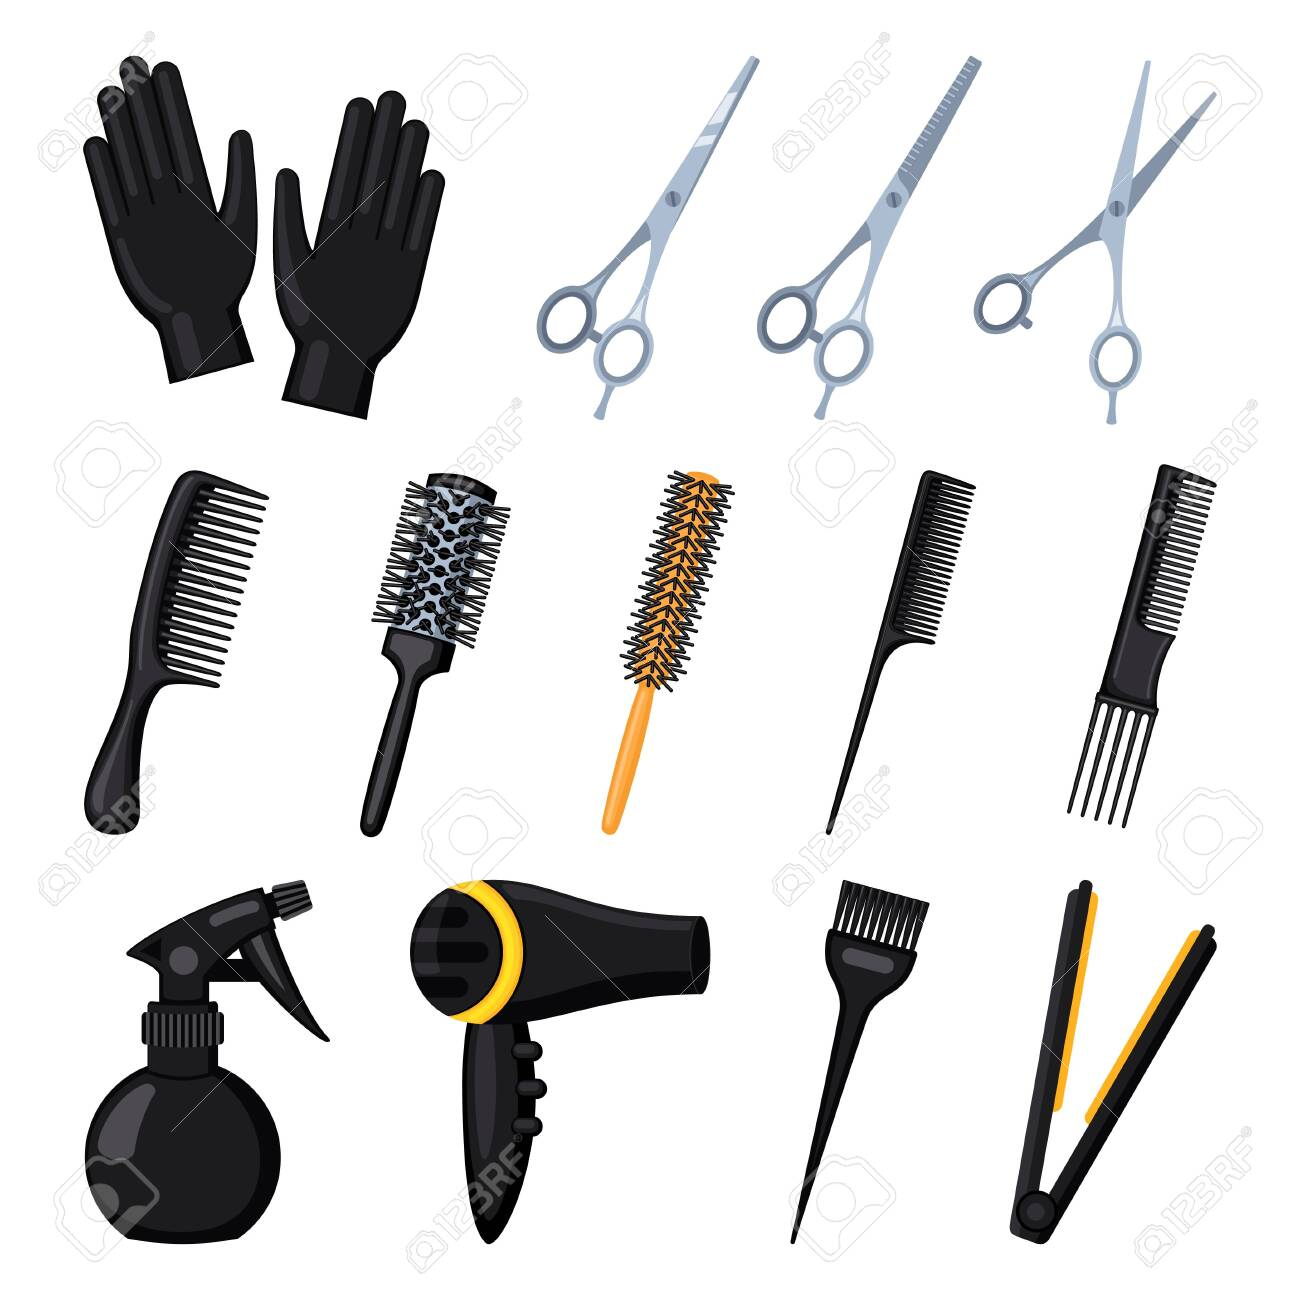 13 Cartoon Hairdresser Tools Beauty Salon Equipment Hair Dresser Royalty Free Cliparts Vectors And Stock Illustration Image 128604031